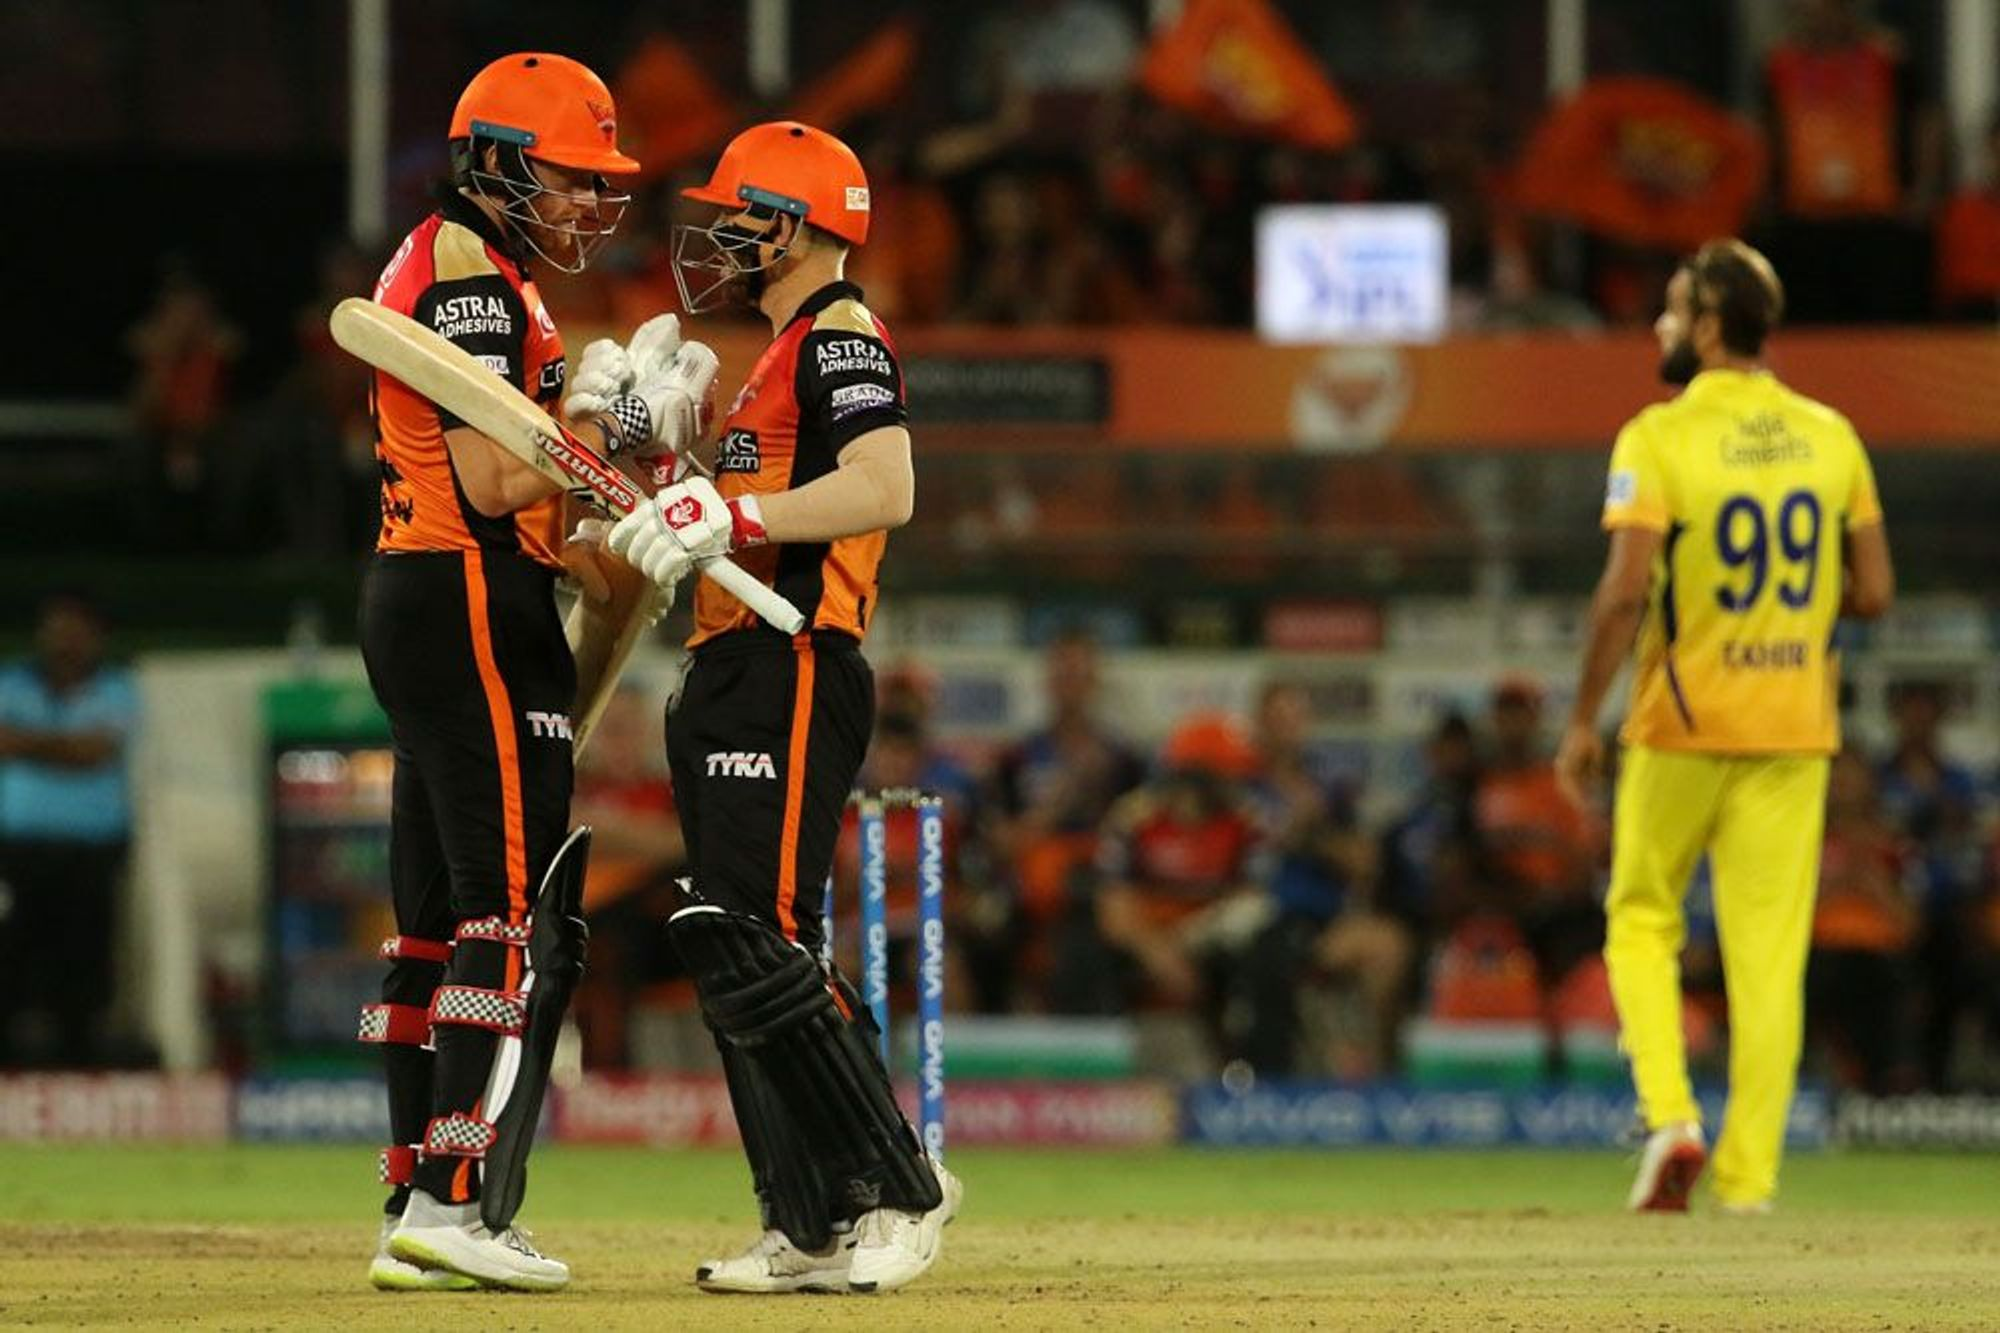 Ipl 2019 Chennai Super Kings Vs Sunrisers Hyderabad Preview Probable Xi Where To Watch